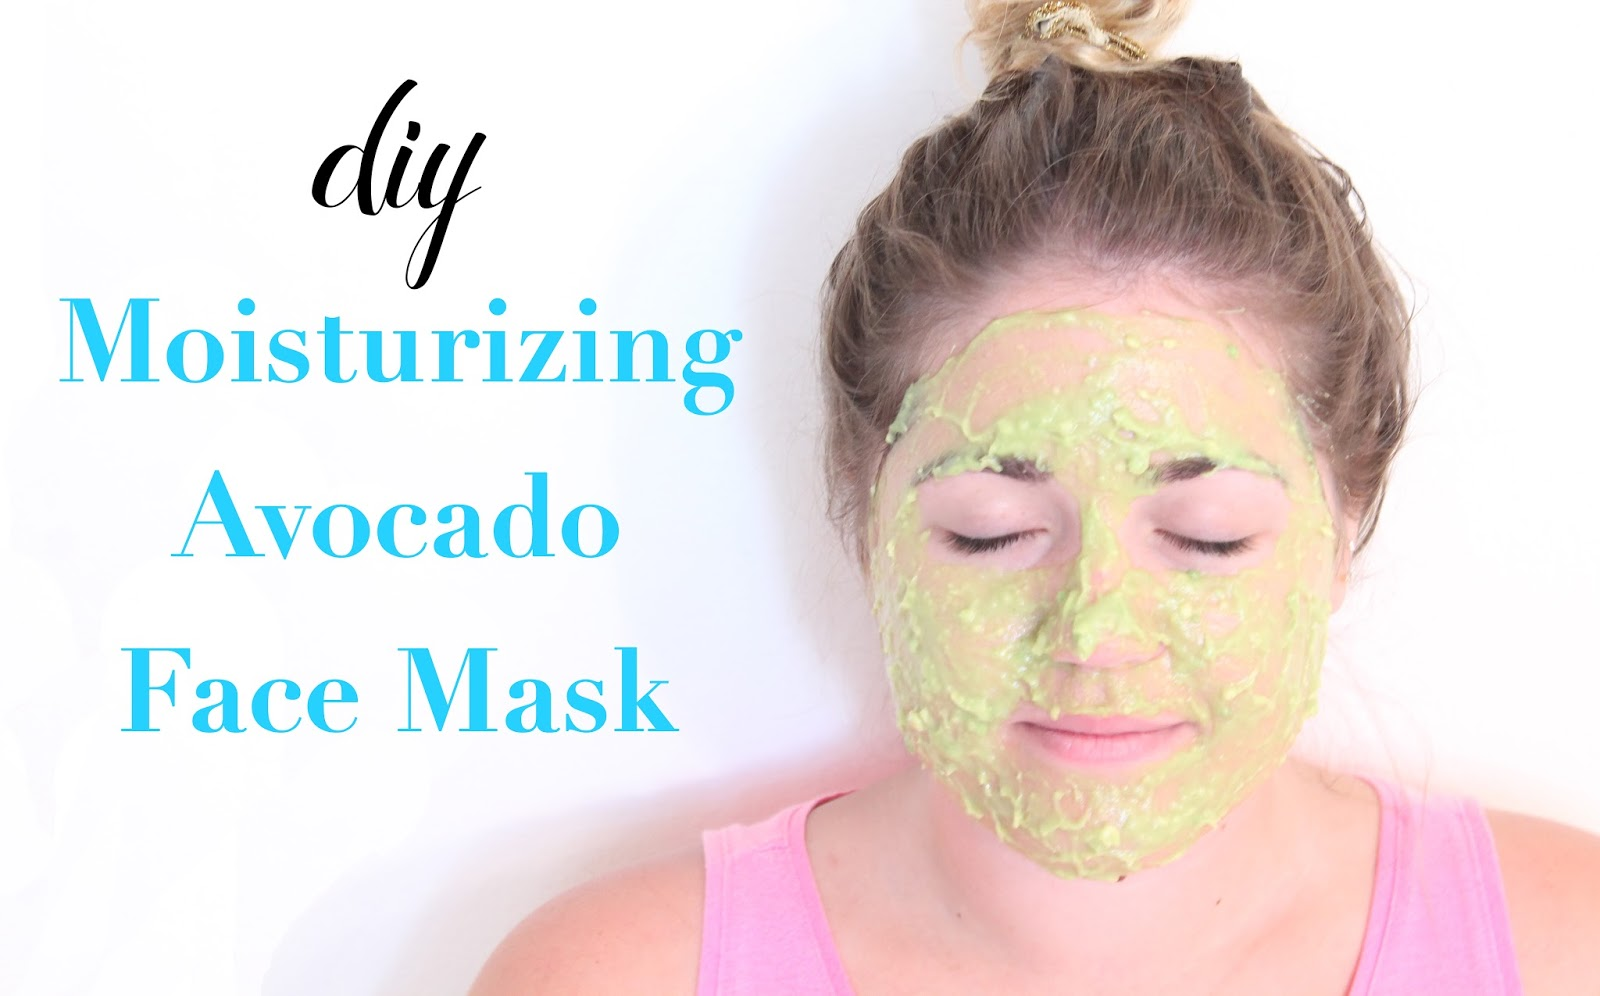 DIY Amazing Moisturizing Avocado Face Mask